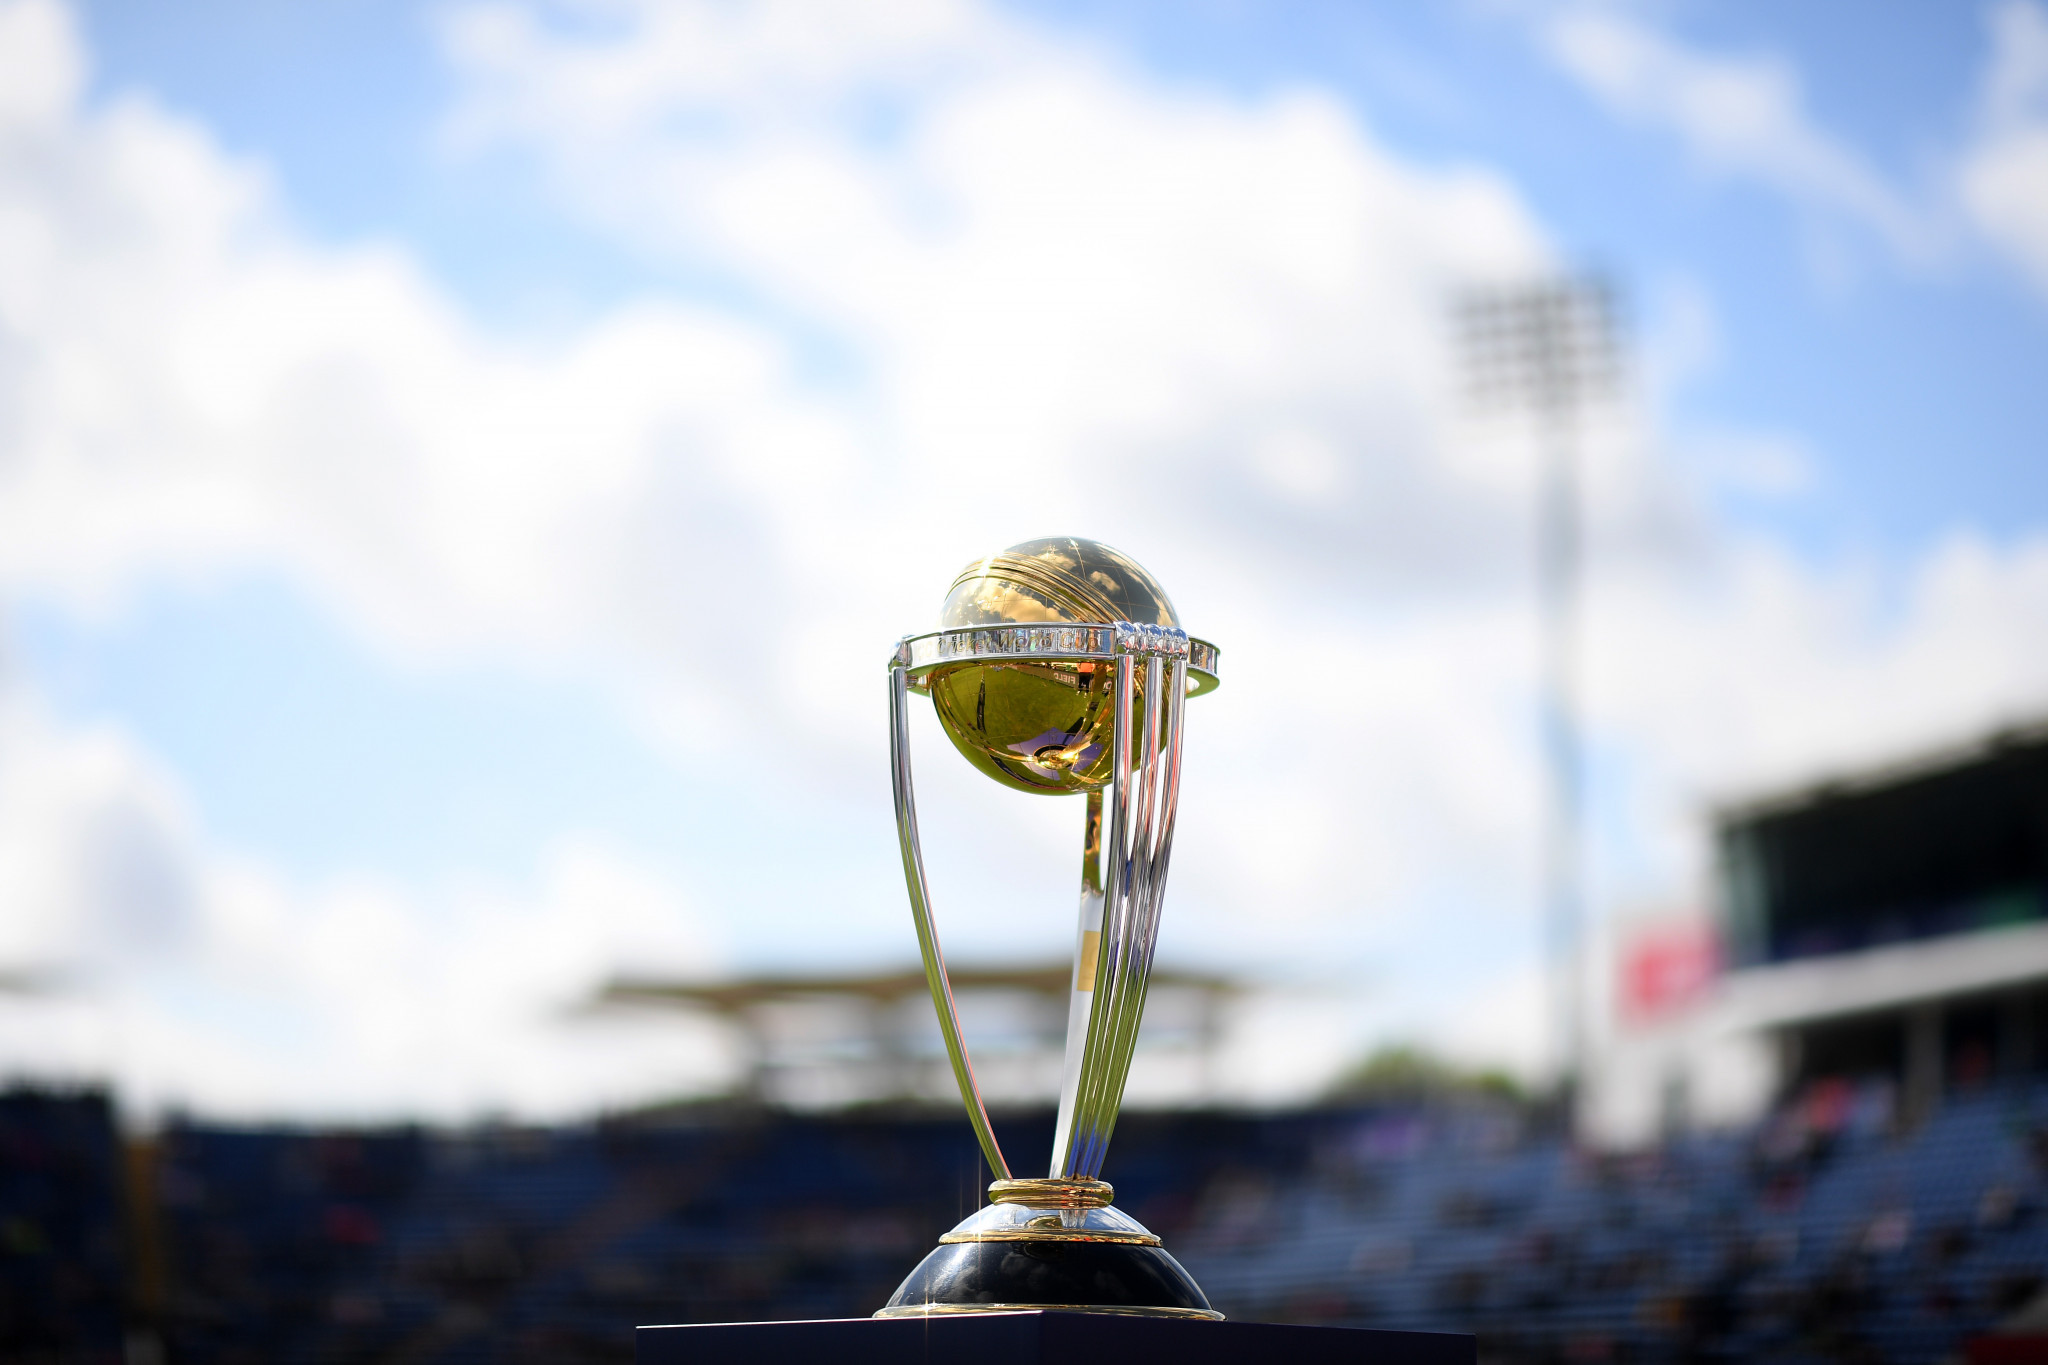 The ICC Men's Cricket World Cup 2023 has been rescheduled to October and November that year ©Getty Images